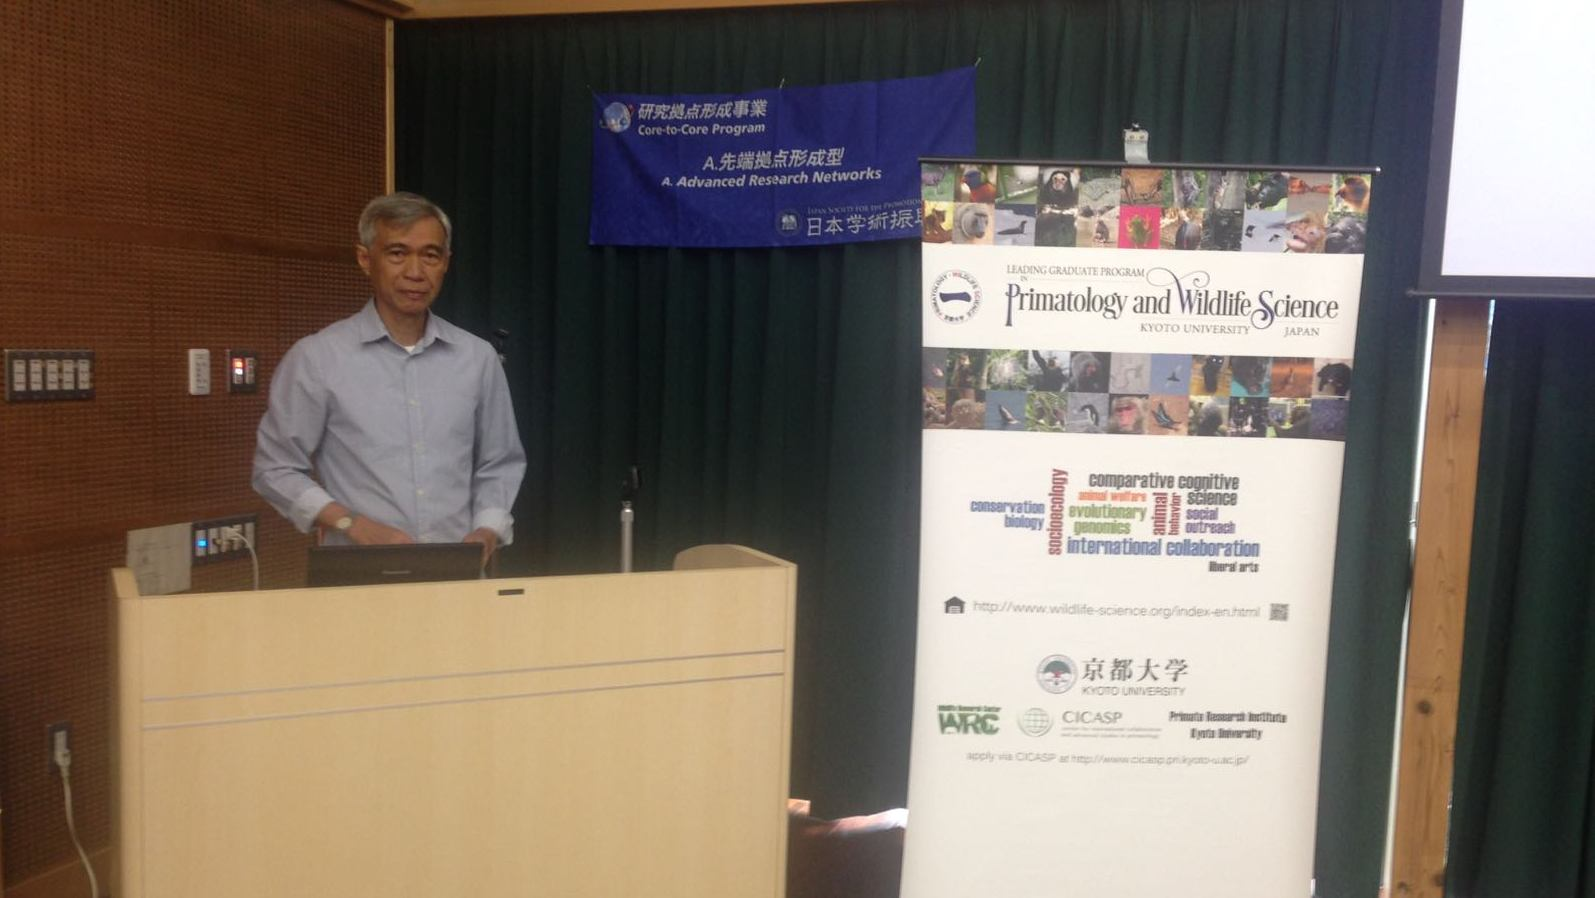 Two Staffs Attended International Symposium on Primatology and Wildlife Science in Japan